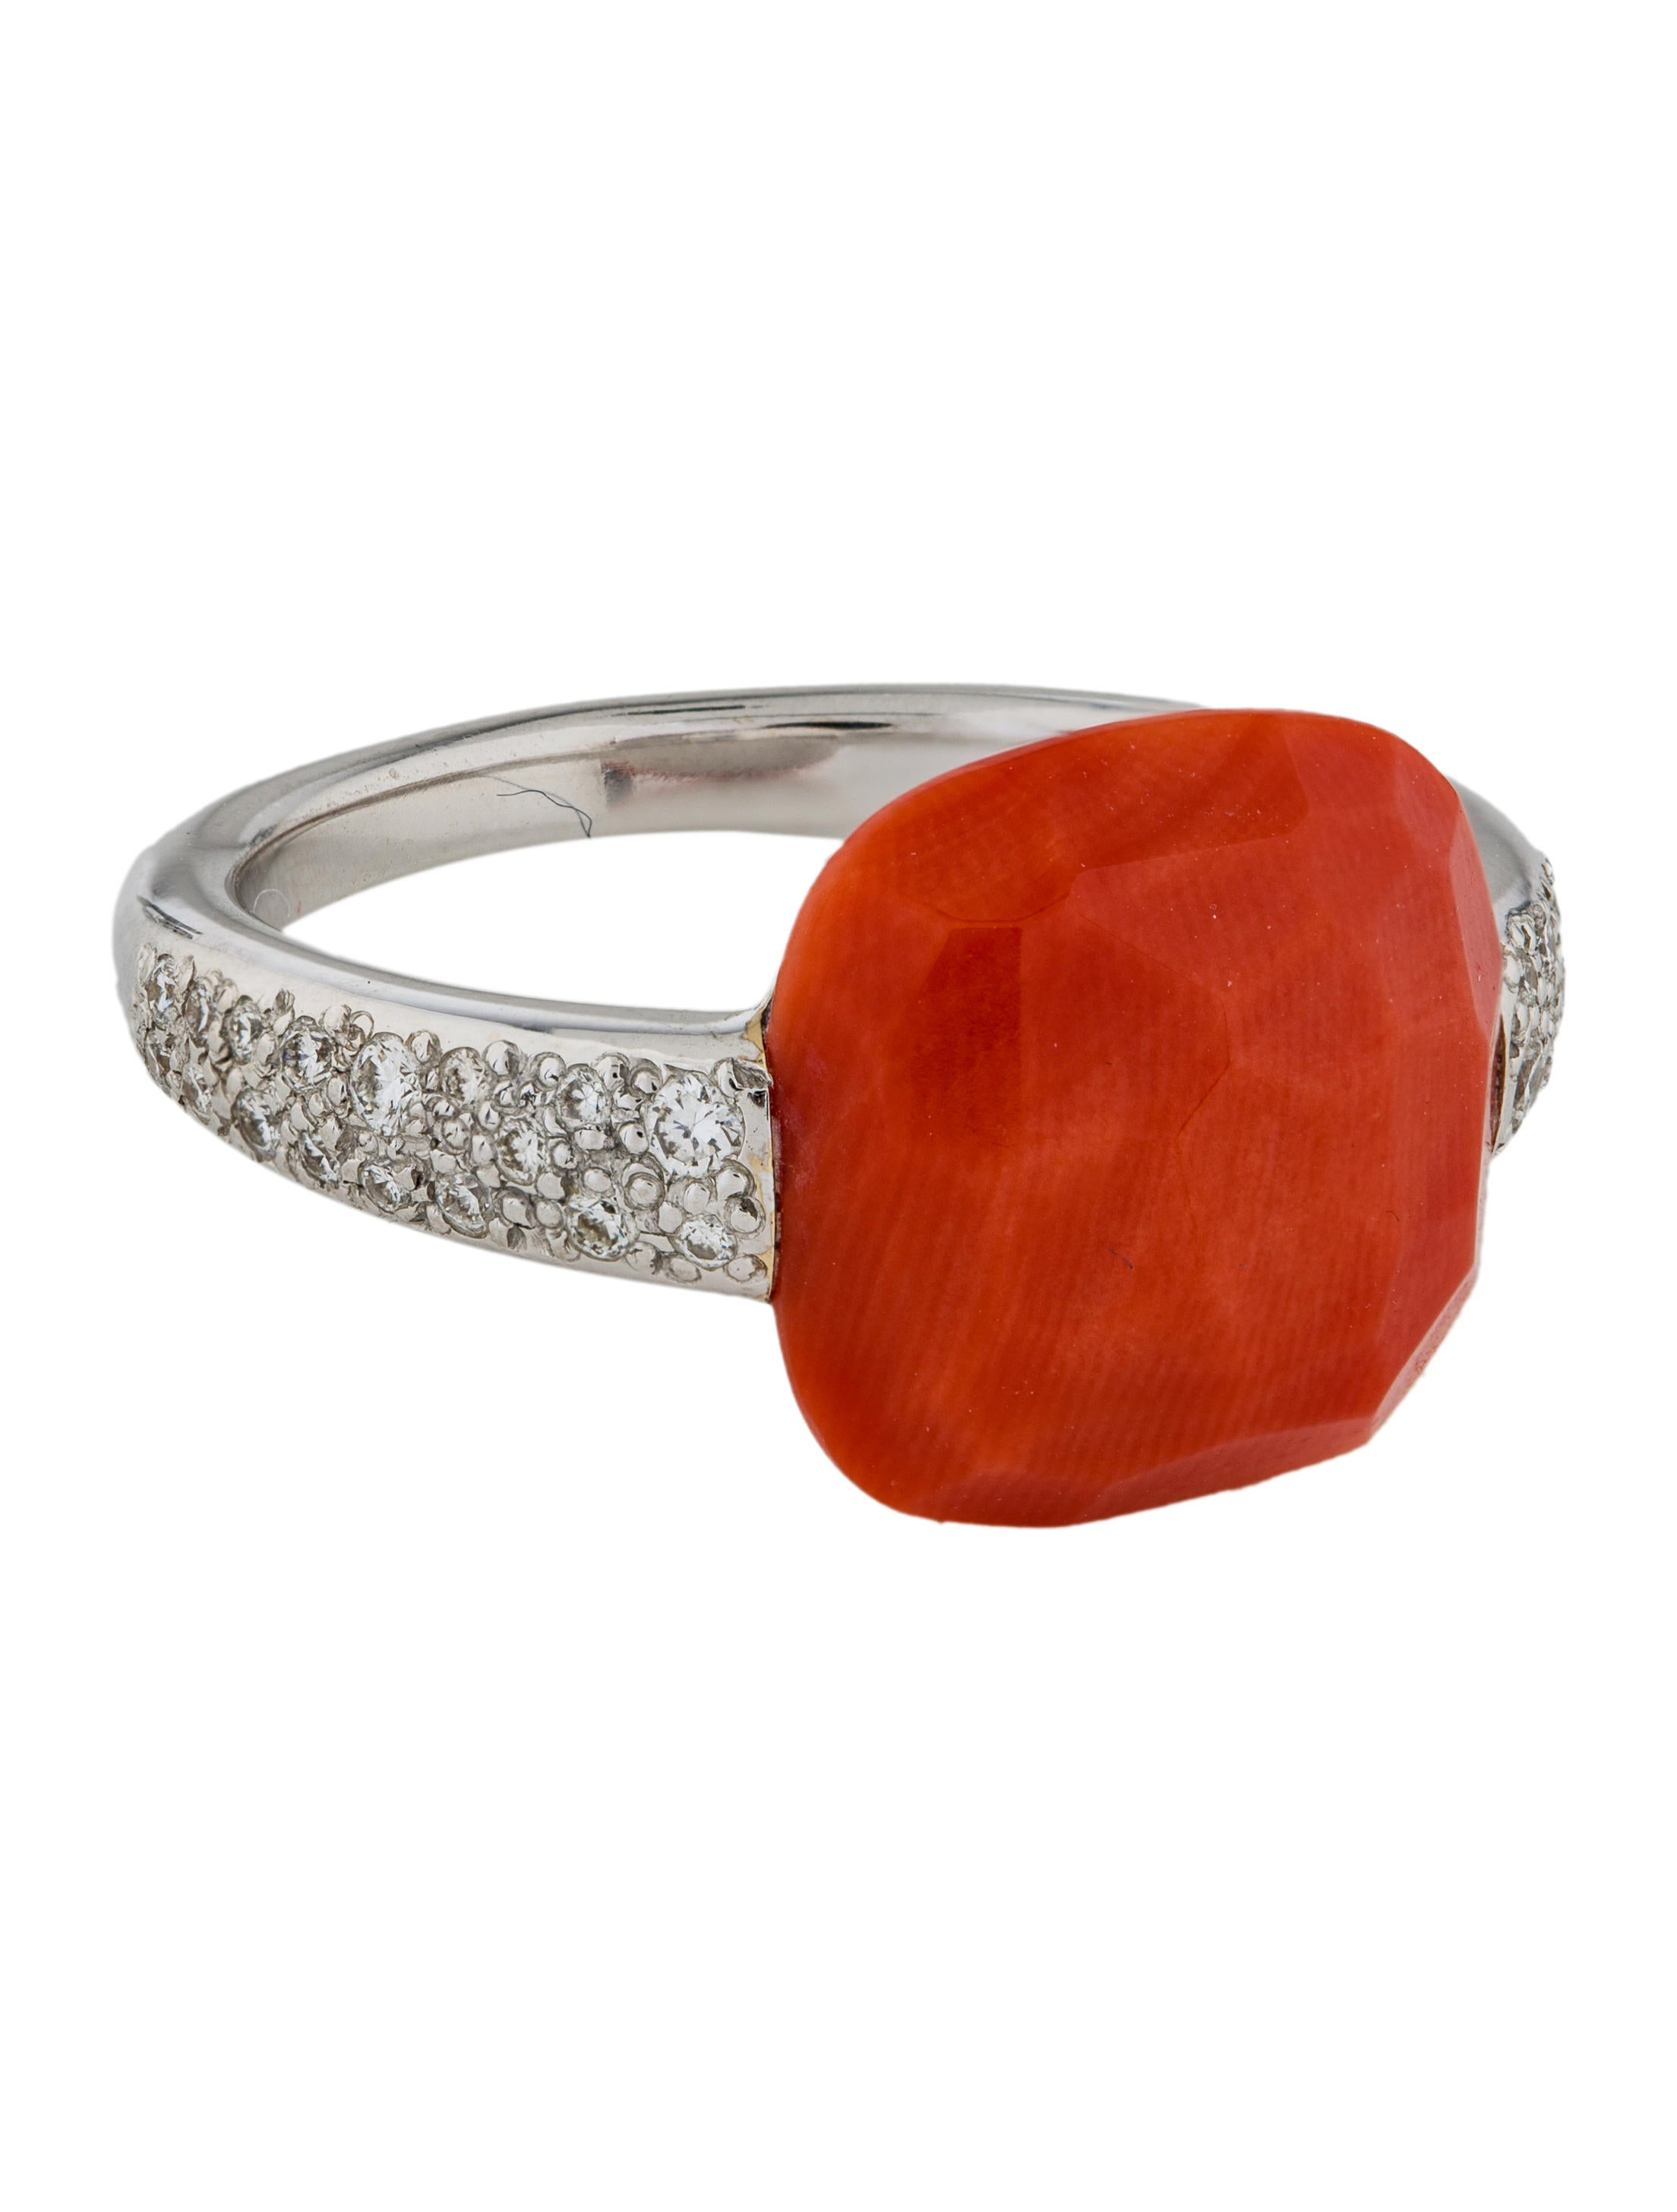 and overstock salmon jewelry ring orange free today valitutti product rings watches michael sapphire coral round cabochon bamboo shipping